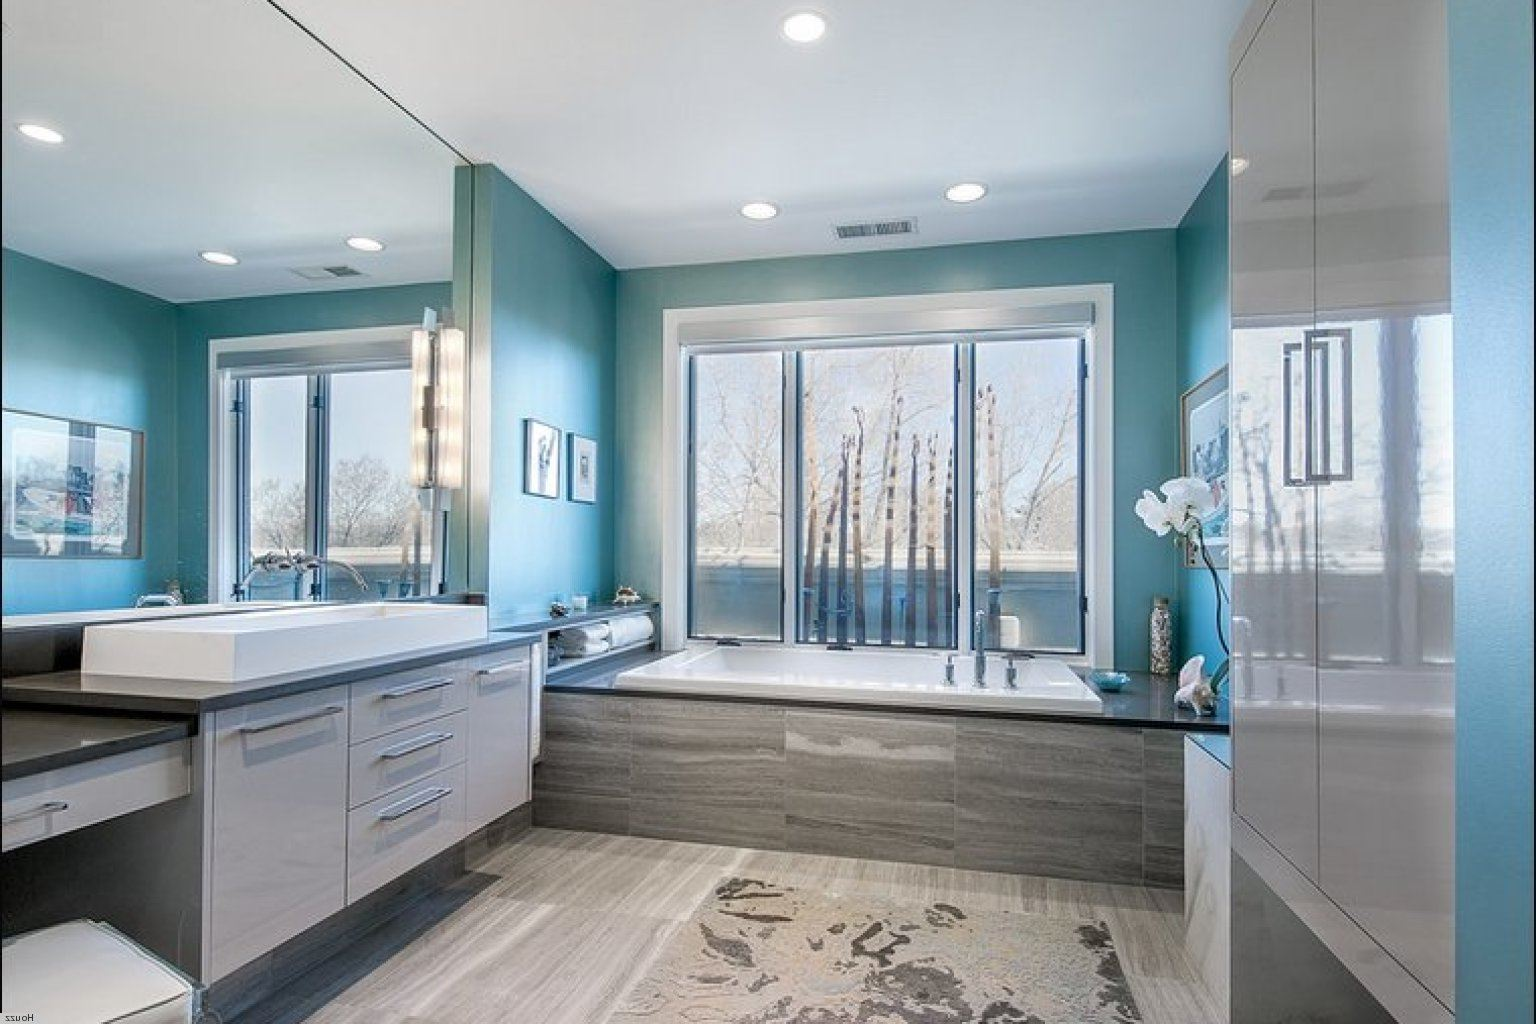 6 Fancy Bathroom Mirror Ideas For Every Style Articles Max